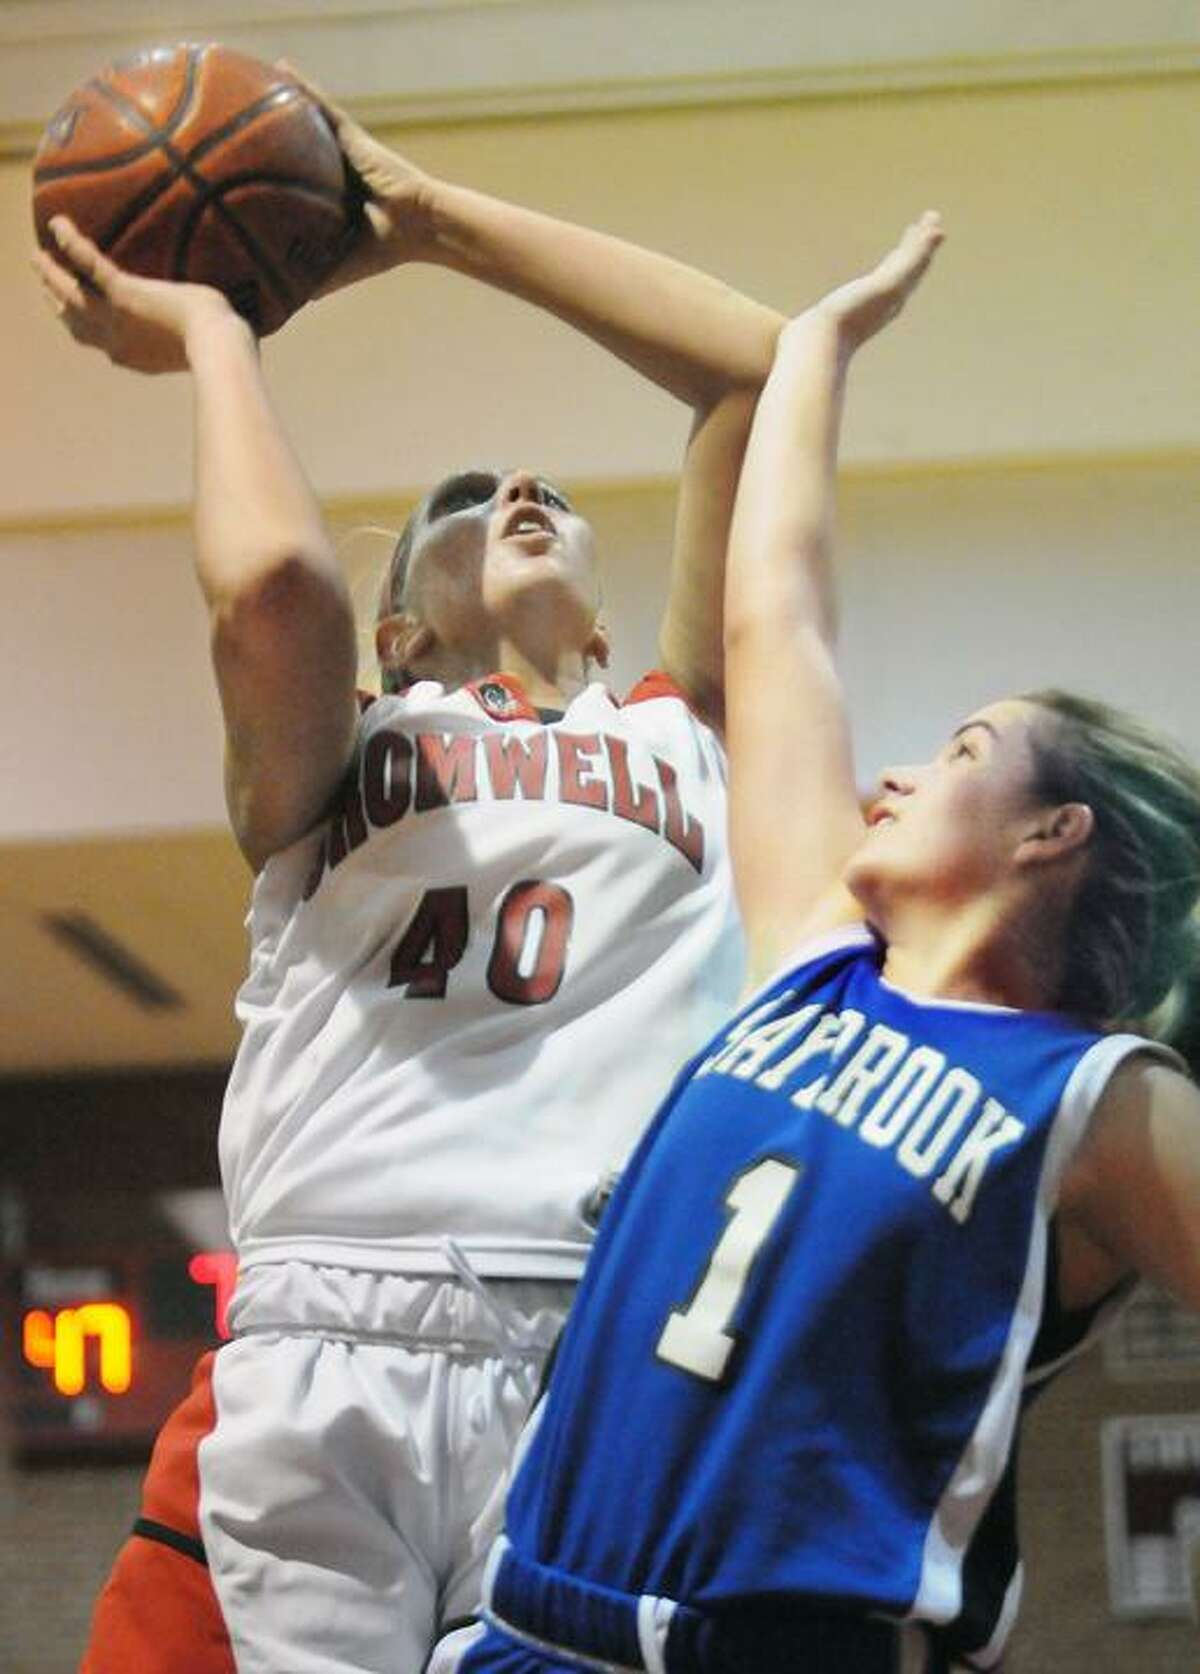 The Middletown Press 2.21.12 Cromwell's Janelle Harrison goes up for a shot against Old Saybrook's Paige Trabucchi in the fourth quarter Tuesday at Valley Regional in Deep River. Cromwell, #2 defeated the the Old Saybrook Rams #6 58-37 in Shoreline Conference semi-final game.